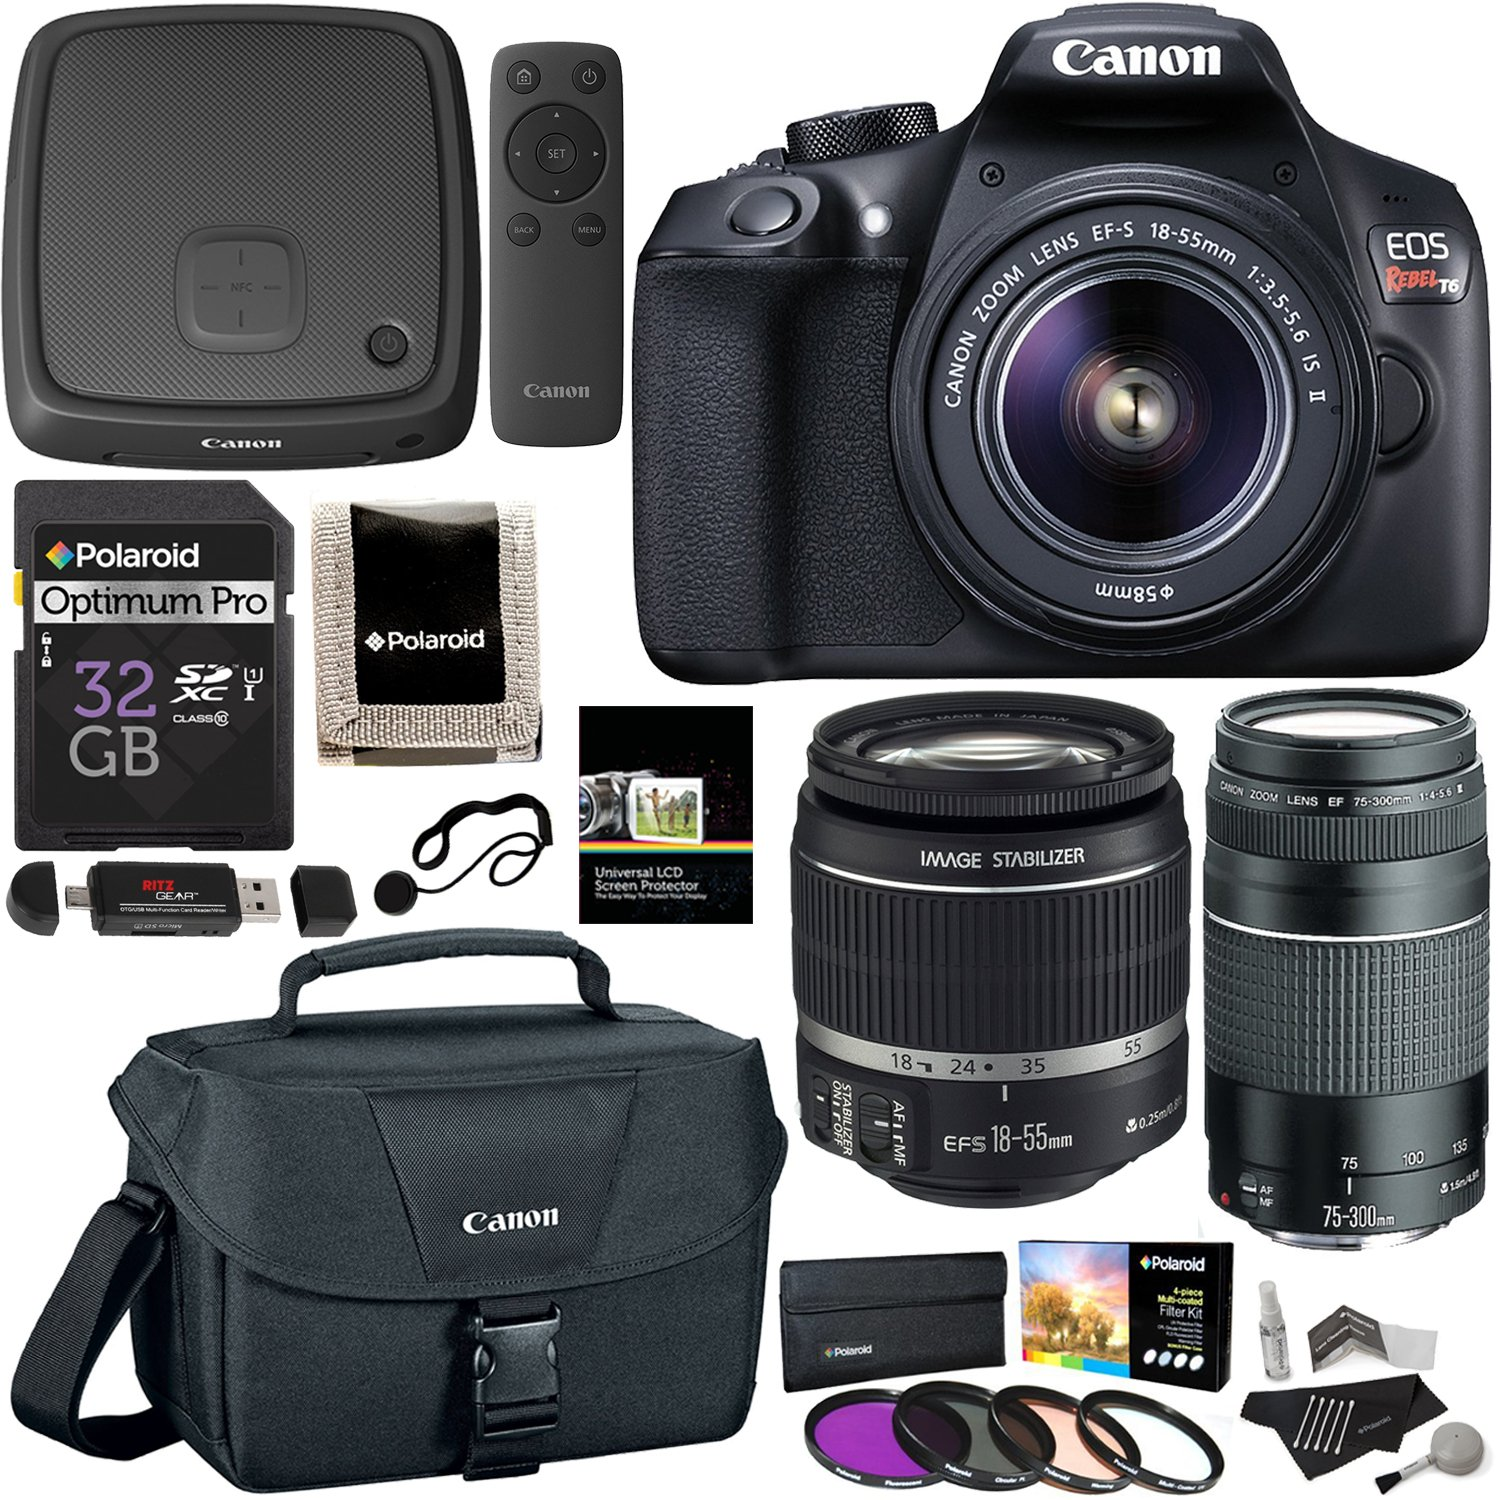 Canon EOS Rebel T6 Digital SLR Camera Kit with EF-S 18-55mm f/3.5-5.6 IS II Lens, Canon EF 75-300mm f/4-5.6 III Telephoto Zoom Lens, Canon Connect Station CS100, 32GB Memory, Filters Accessory Bundle by Ritz Camera